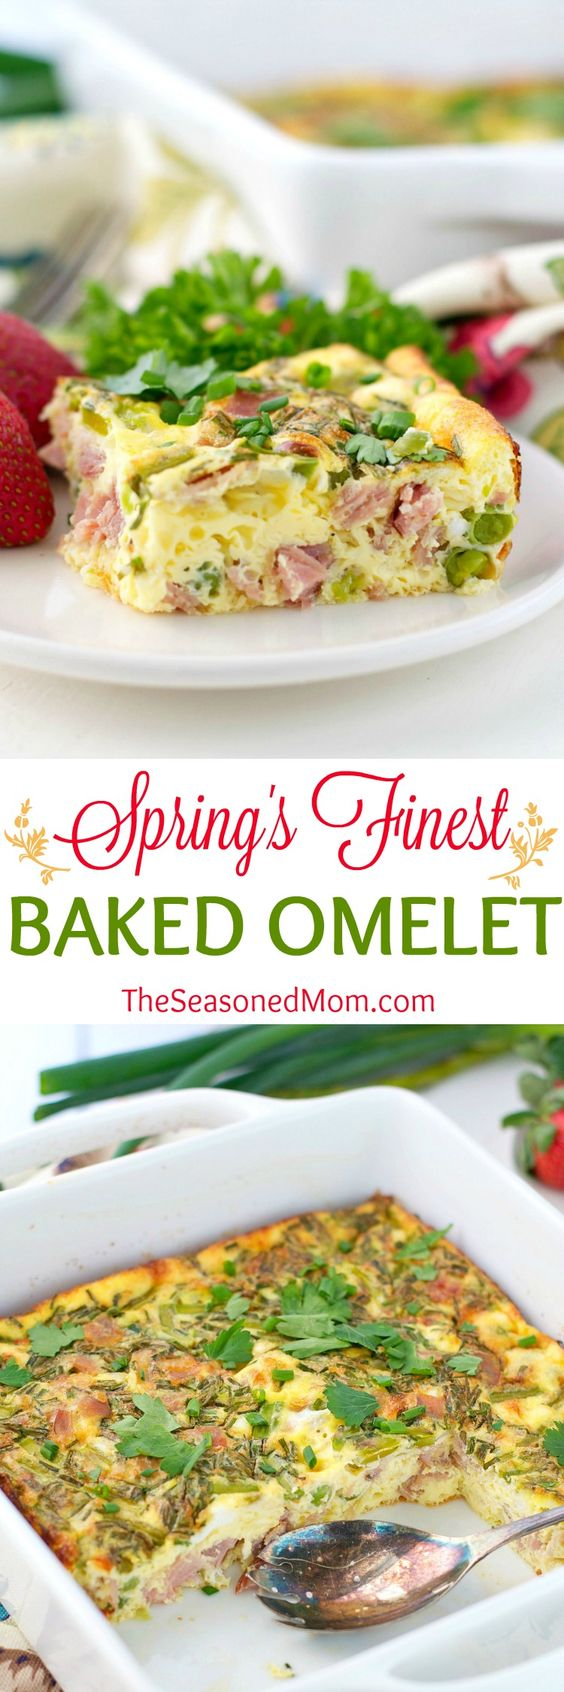 ... ham, and cheese, this healthy breakfast casserole celebrates all of